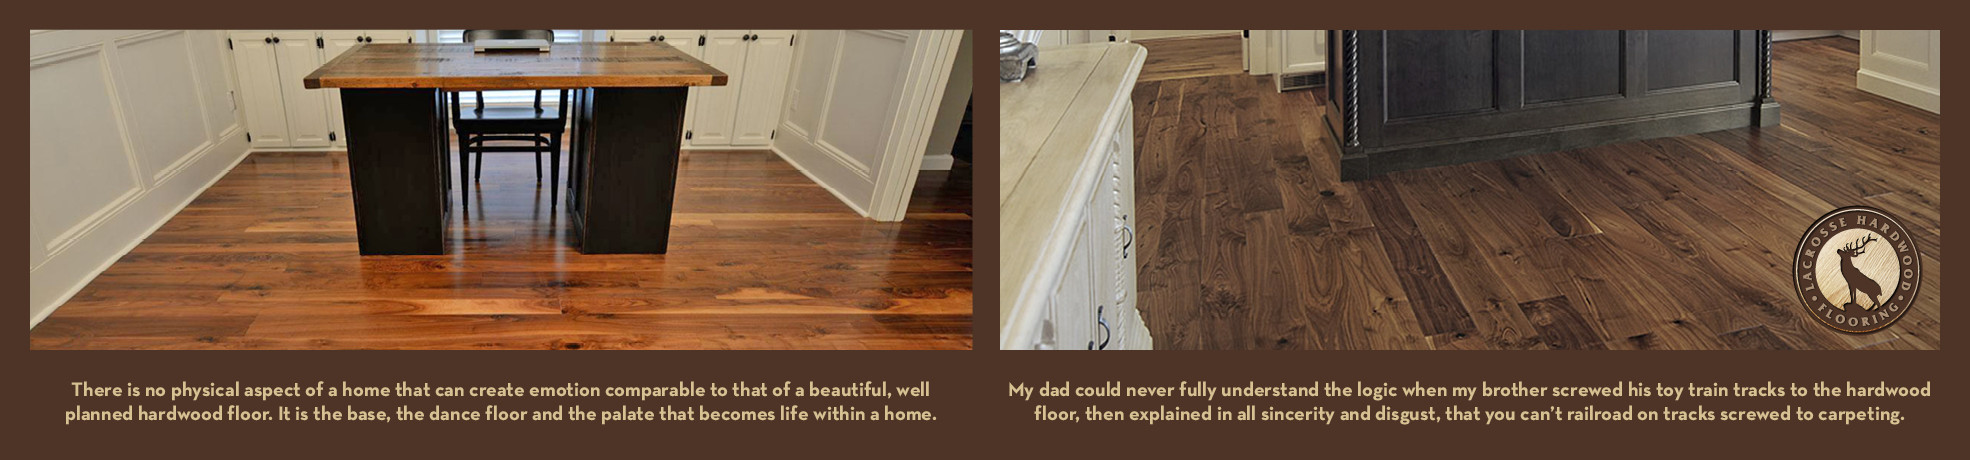 how to install t molding for hardwood floor of lacrosse hardwood flooring walnut white oak red oak hickory for lhfsliderv22